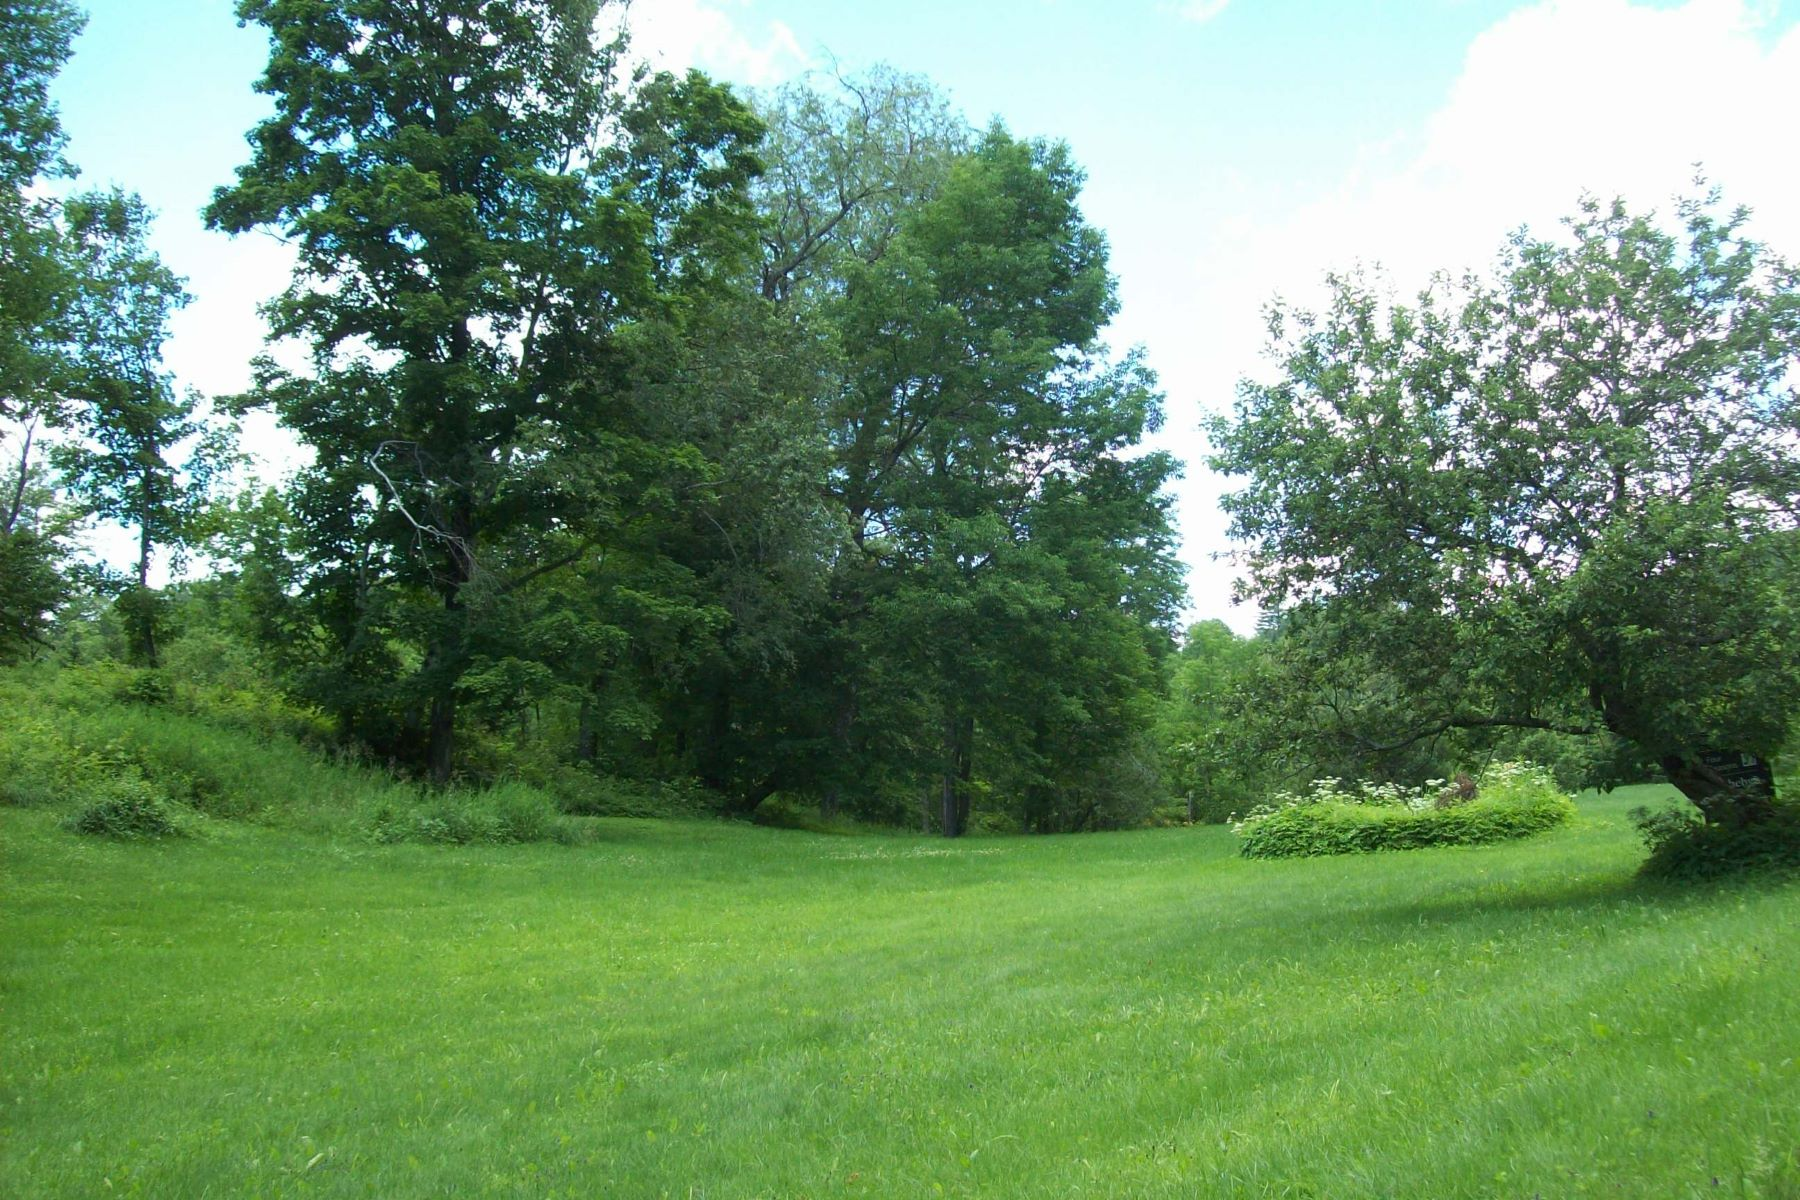 Additional photo for property listing at Old apple trees and pretty views 297 Coppermine Rd Corinth, Vermont 05039 United States